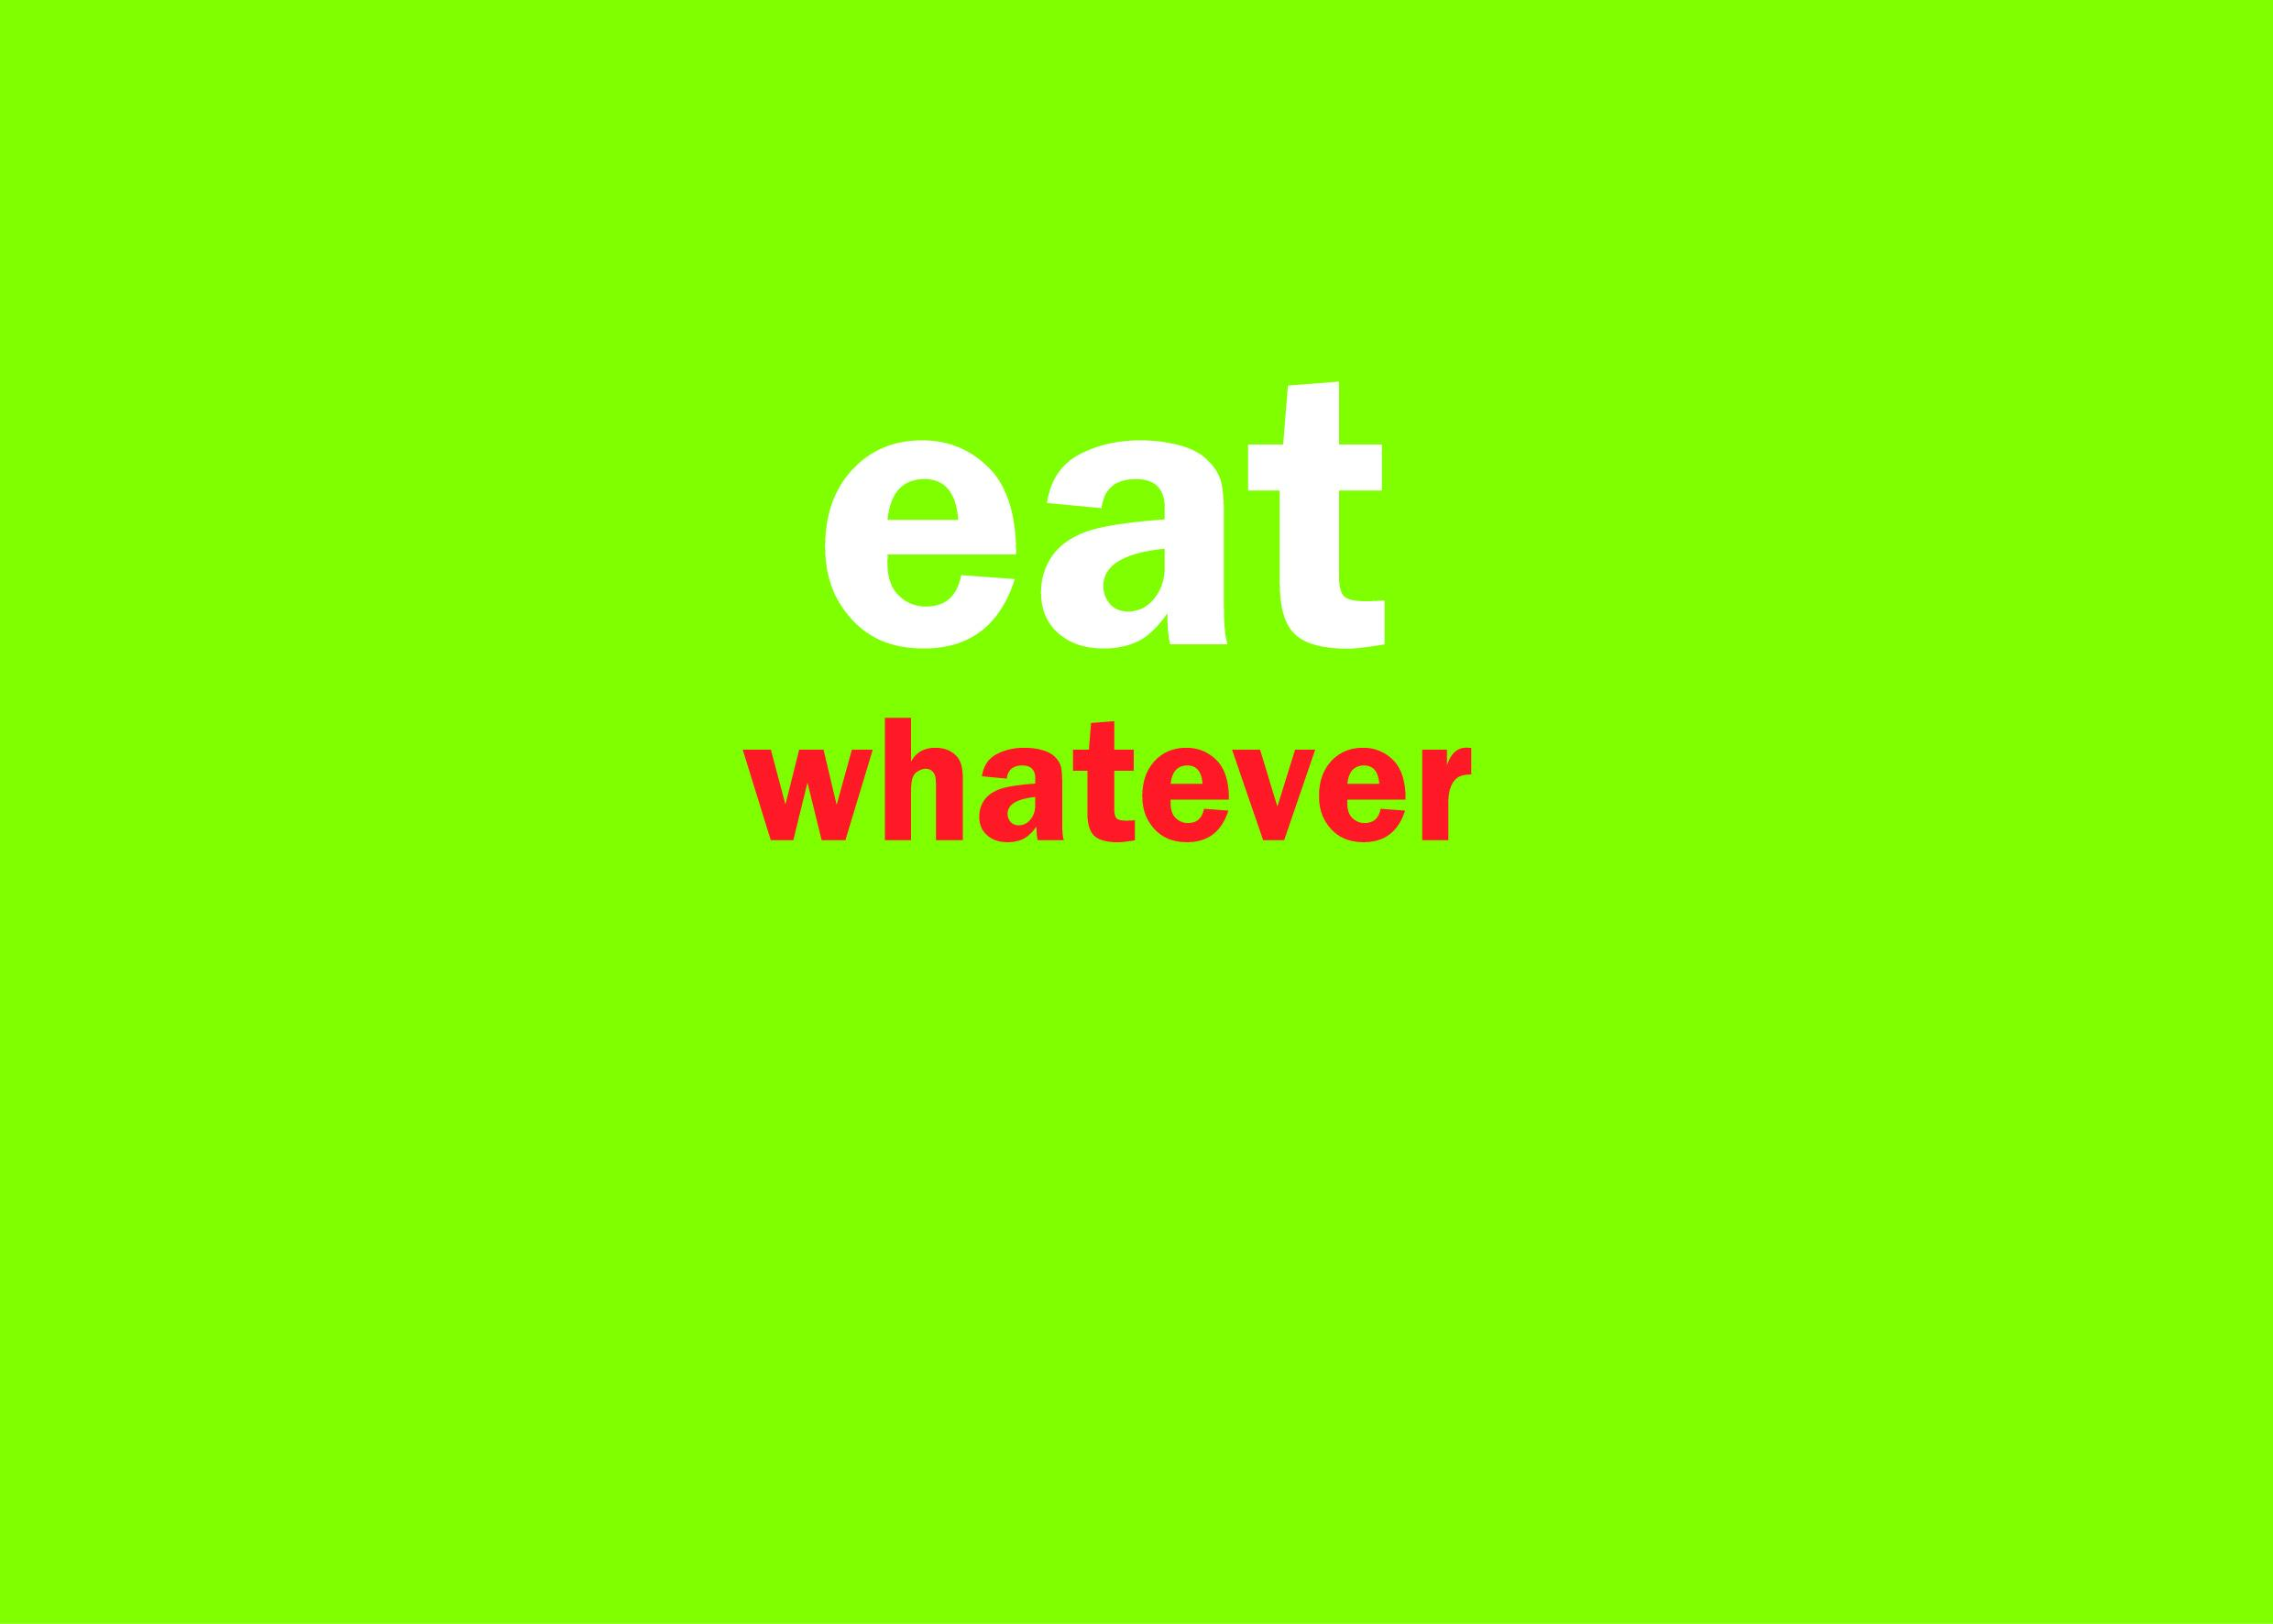 eating is fun - image 3 - student project